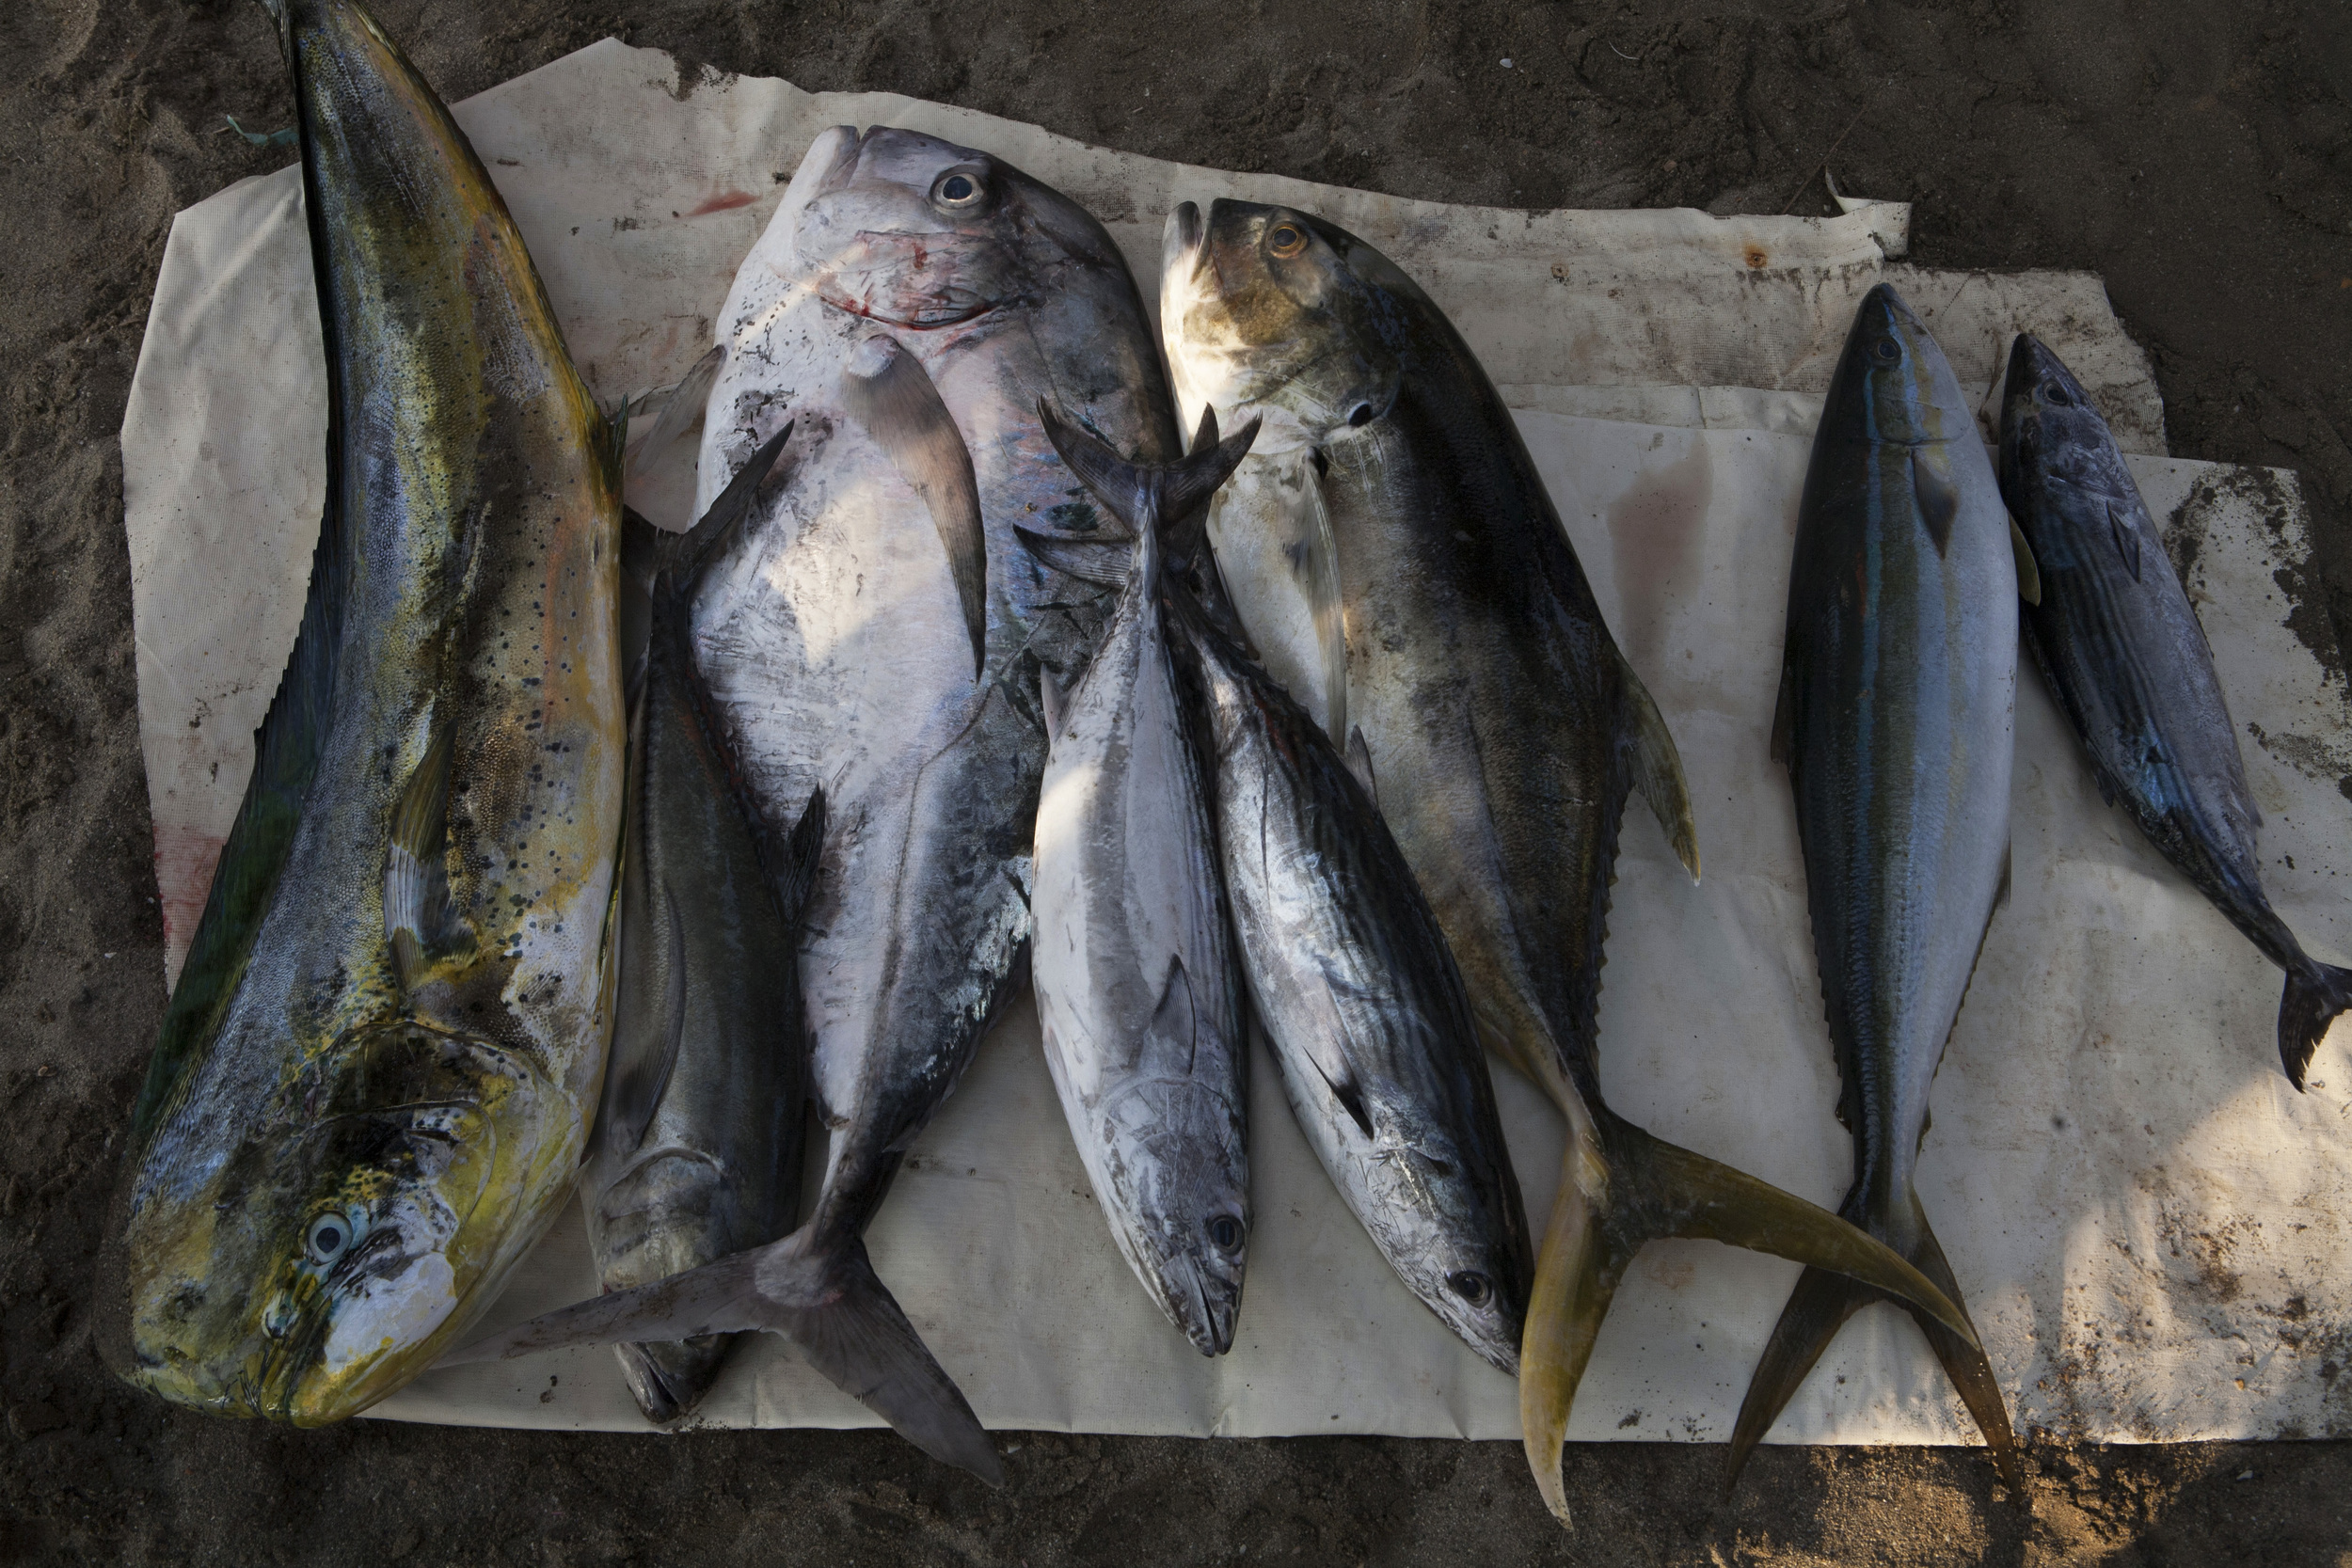 Mahi-Mahi, Bonita, Black Shipjack, Sierra, Wahoo, Tuna, are an assortment of some of the fish that are caught in the waters of Zihuatanejo. ©Gail Fisher